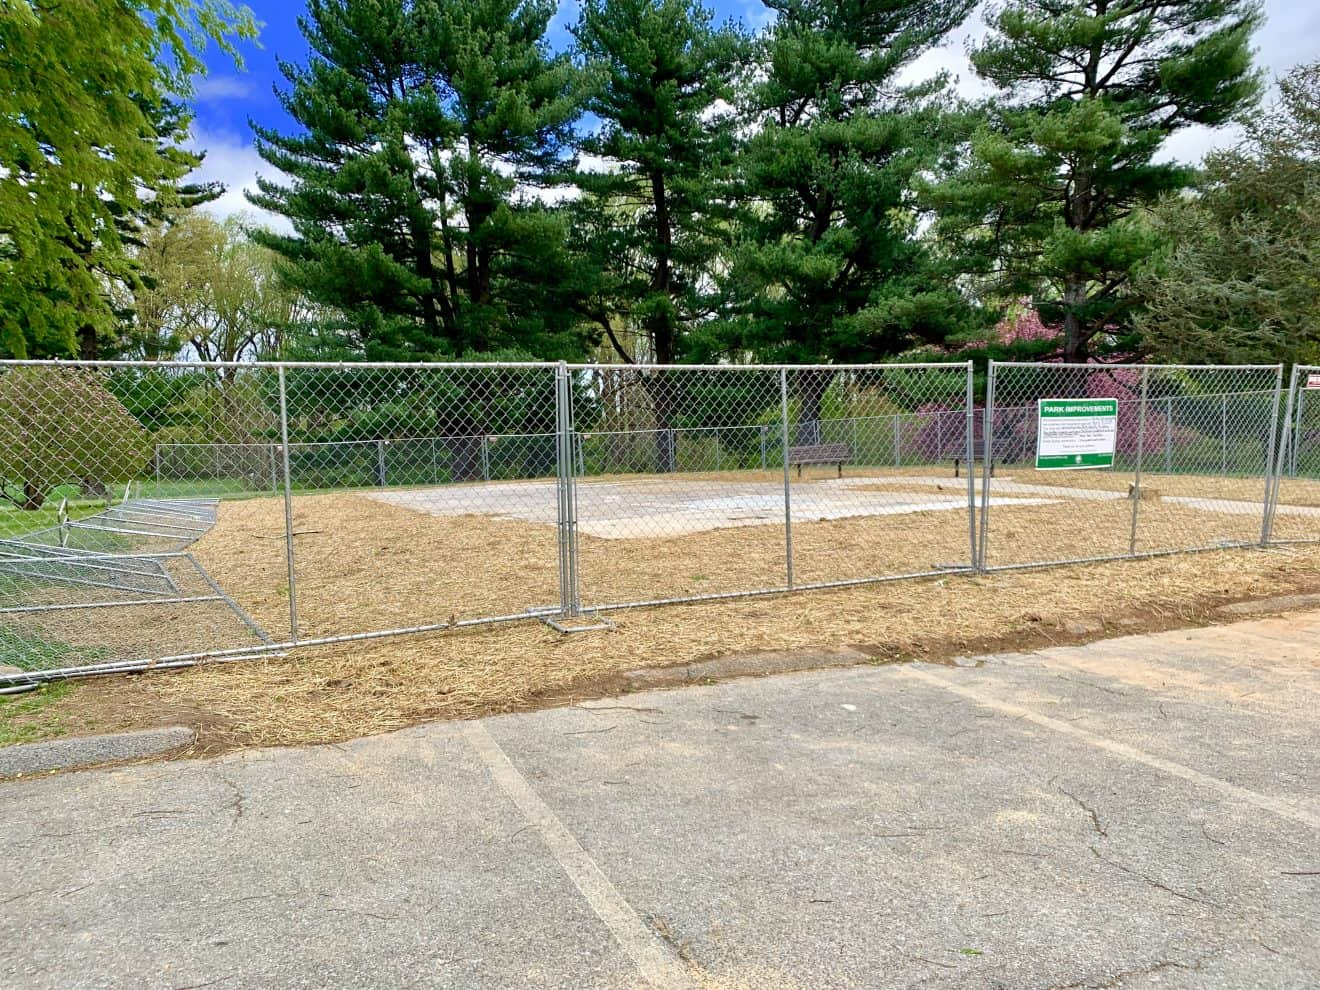 Nolte Park Activity Building Gone; Community Garden Planned - The activity building at Nolte Local Park has been taken down and its foundation will serve as the base for a new community garden, according to plans from Montgomery Parks.